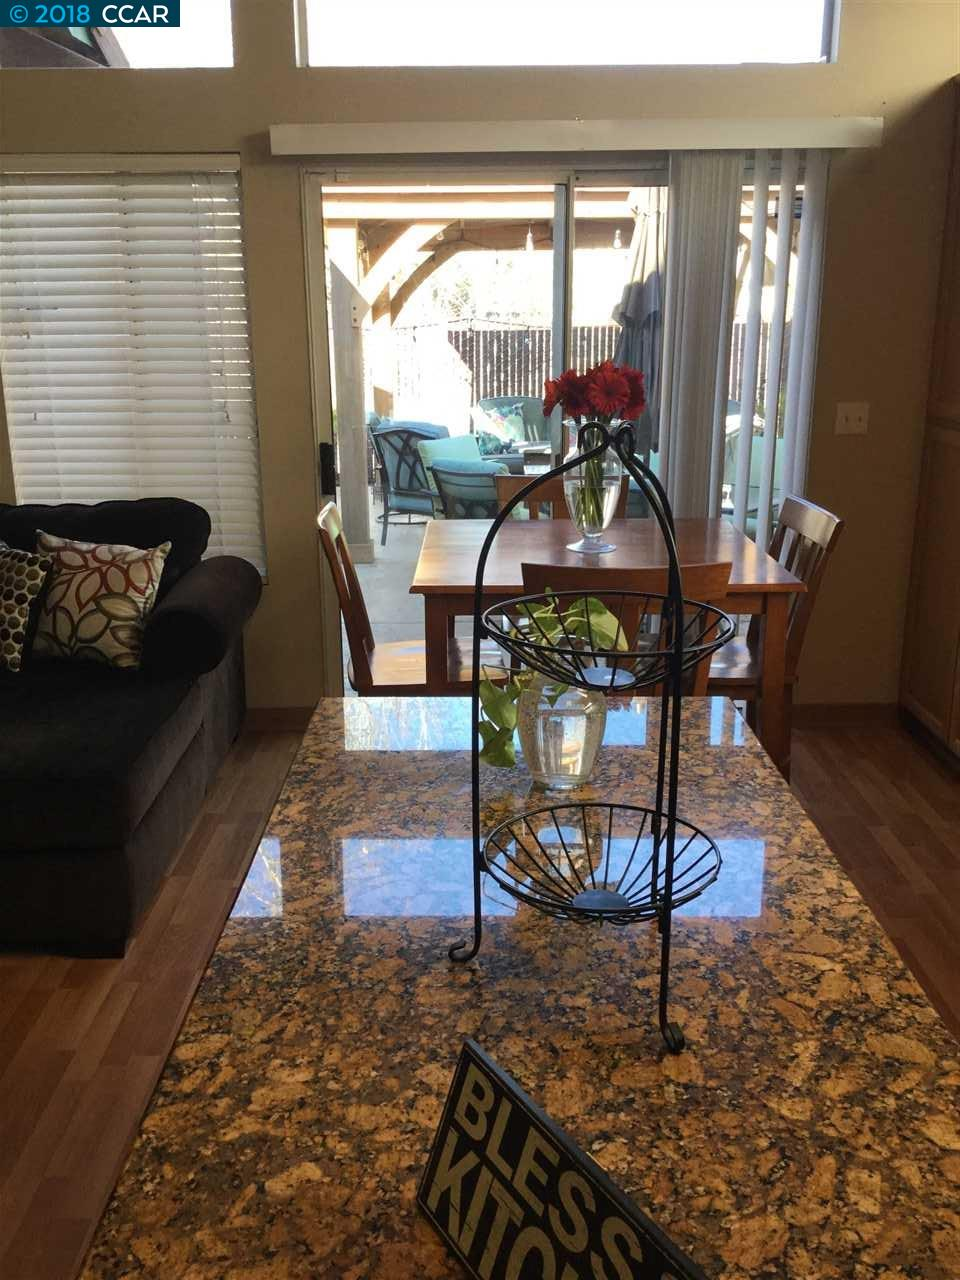 Additional photo for property listing at 5301 Fairside Way 5301 Fairside Way Antioch, Californie 94531 États-Unis